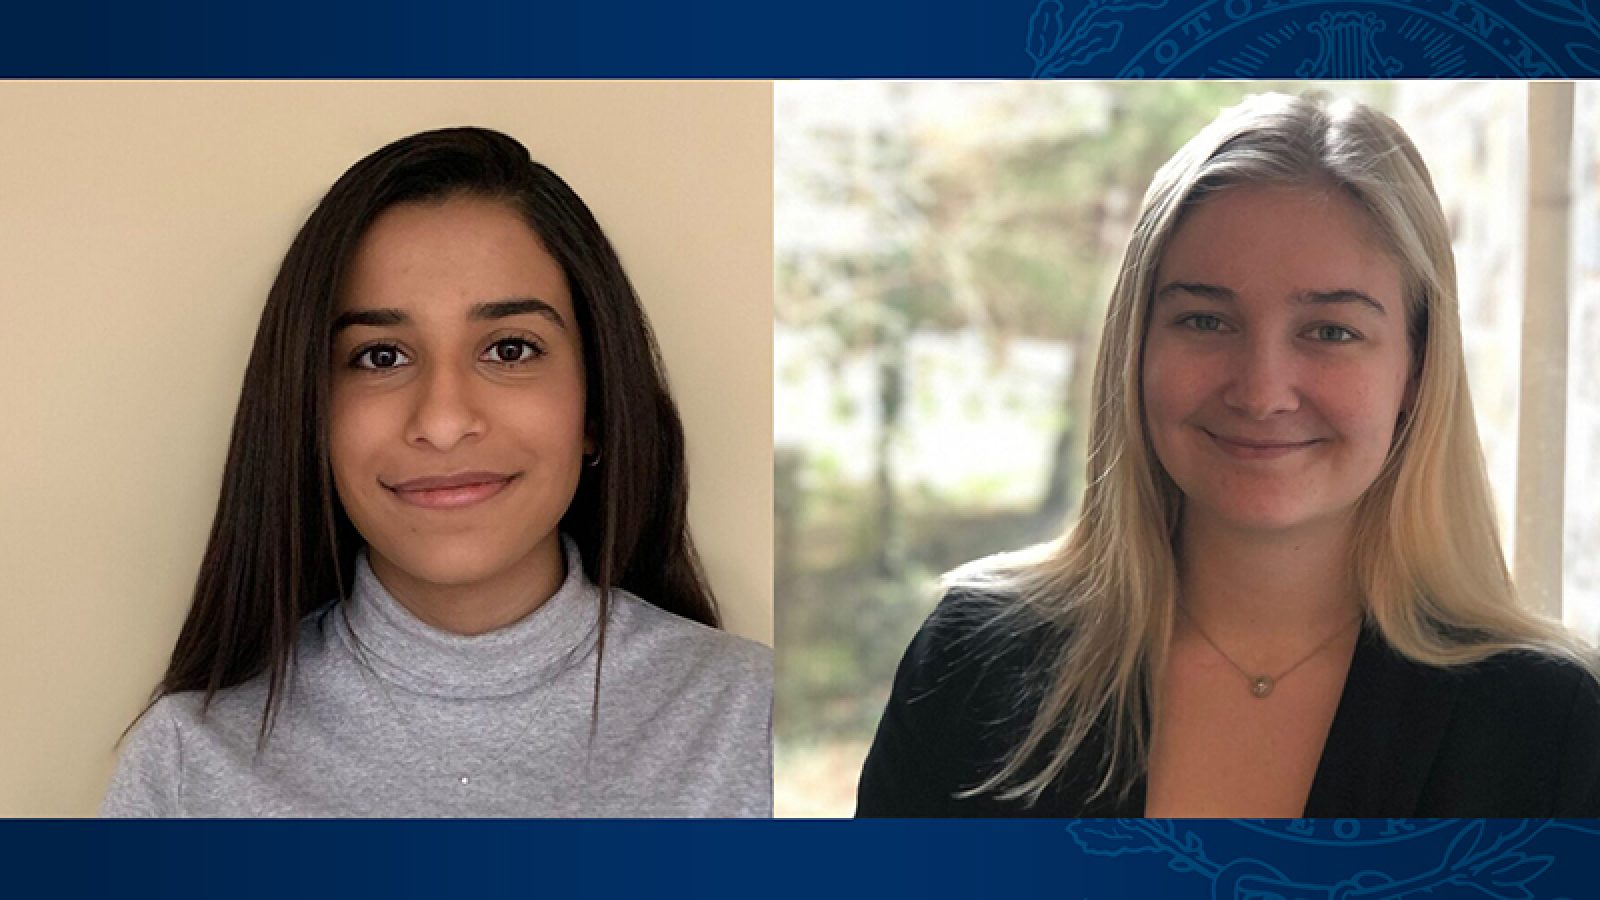 https://physics.georgetown.edu/pia-bhatia-and-grace-feagin-named-clare-boothe-luce-undergraduate-scholars/#_ga=2.148775607.108815381.1600723555-1040399761.1585915234